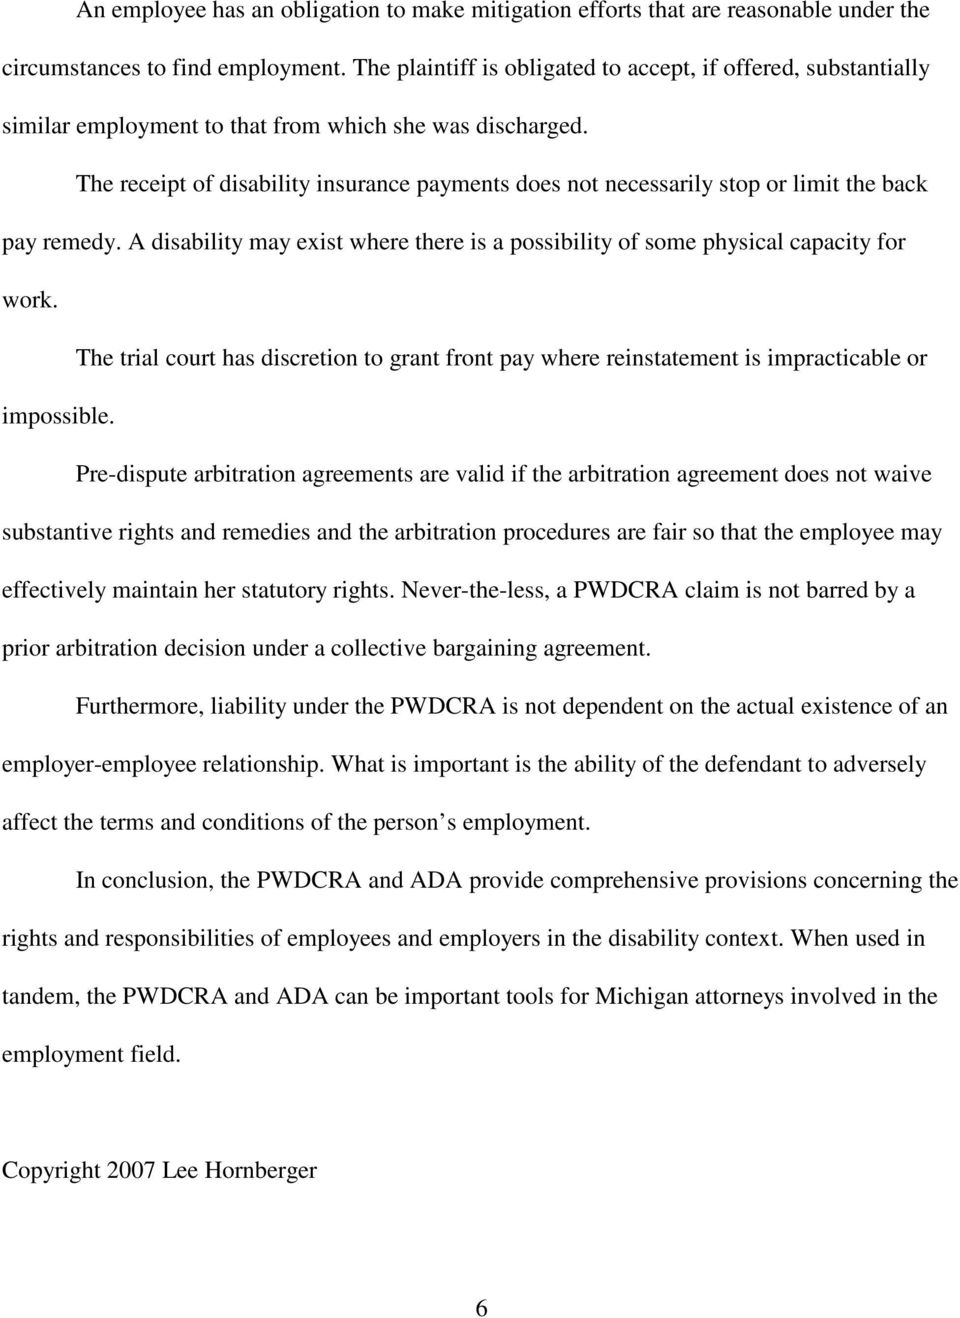 The receipt of disability insurance payments does not necessarily stop or limit the back pay remedy. A disability may exist where there is a possibility of some physical capacity for work.